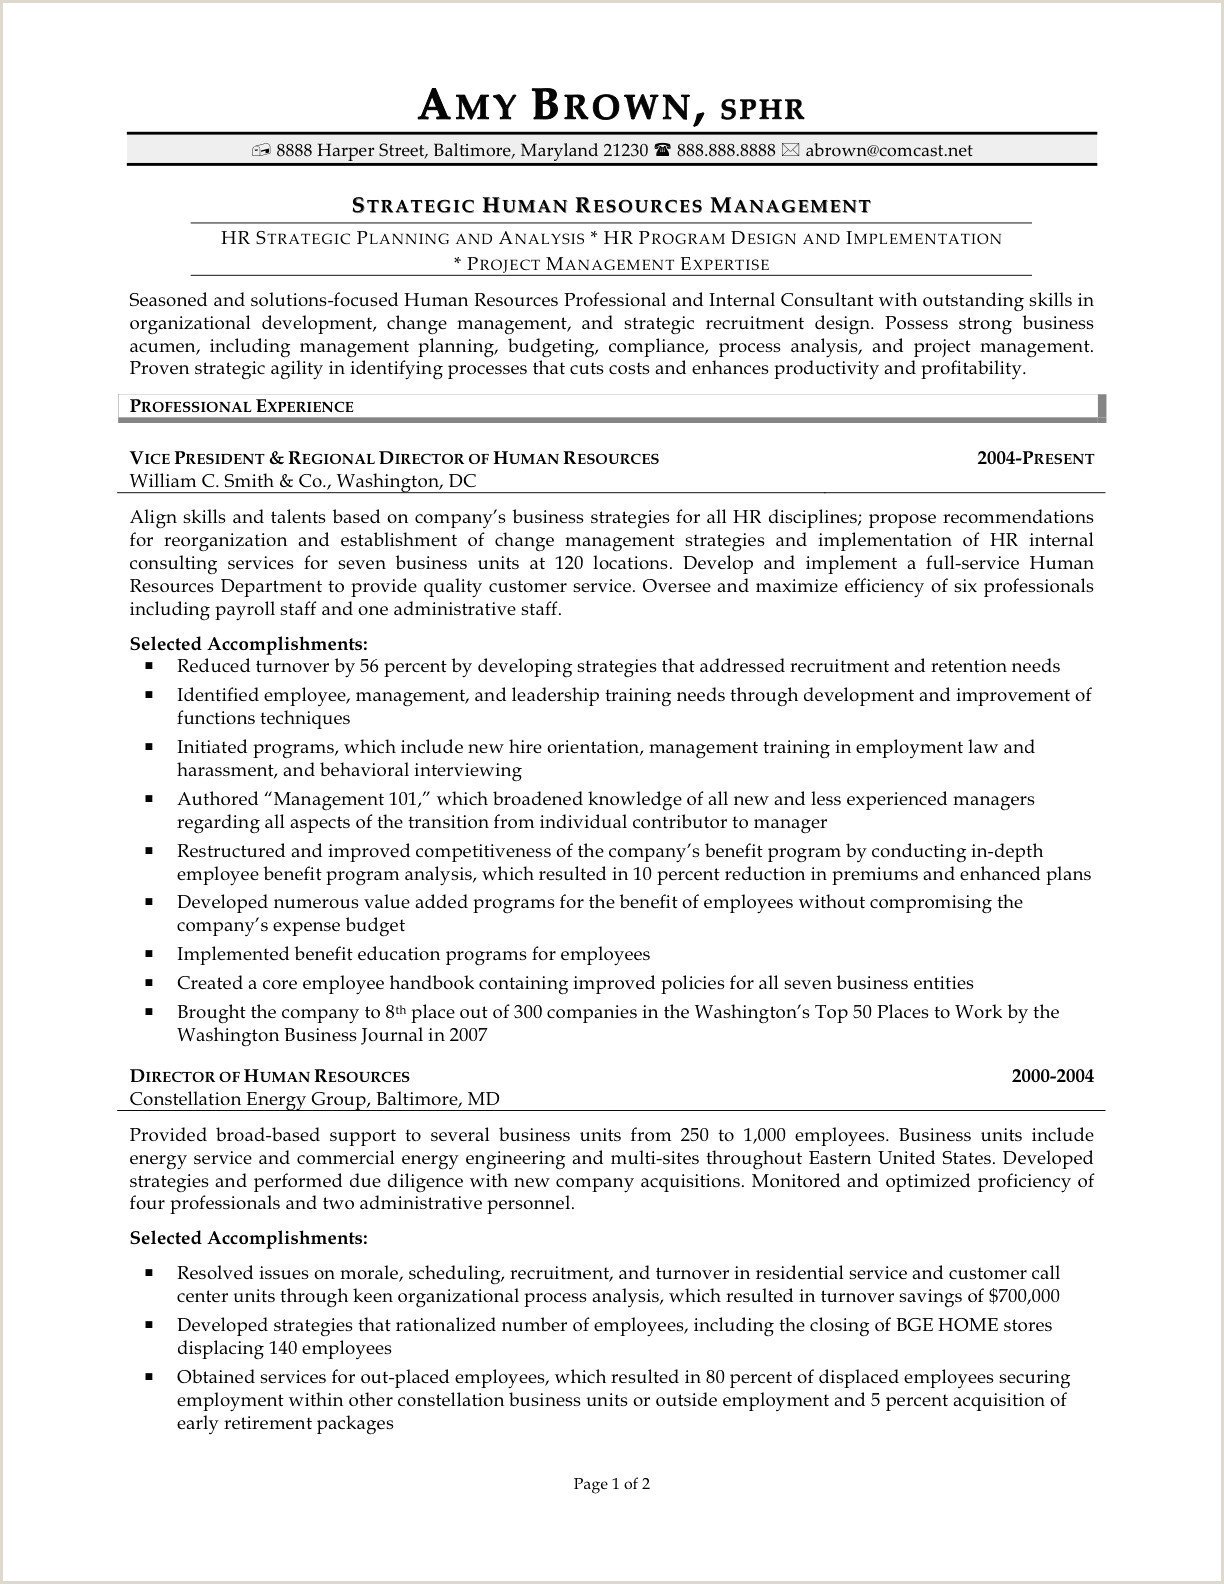 Human Resources Manager Resume Vice President Human Resources Resume Sample